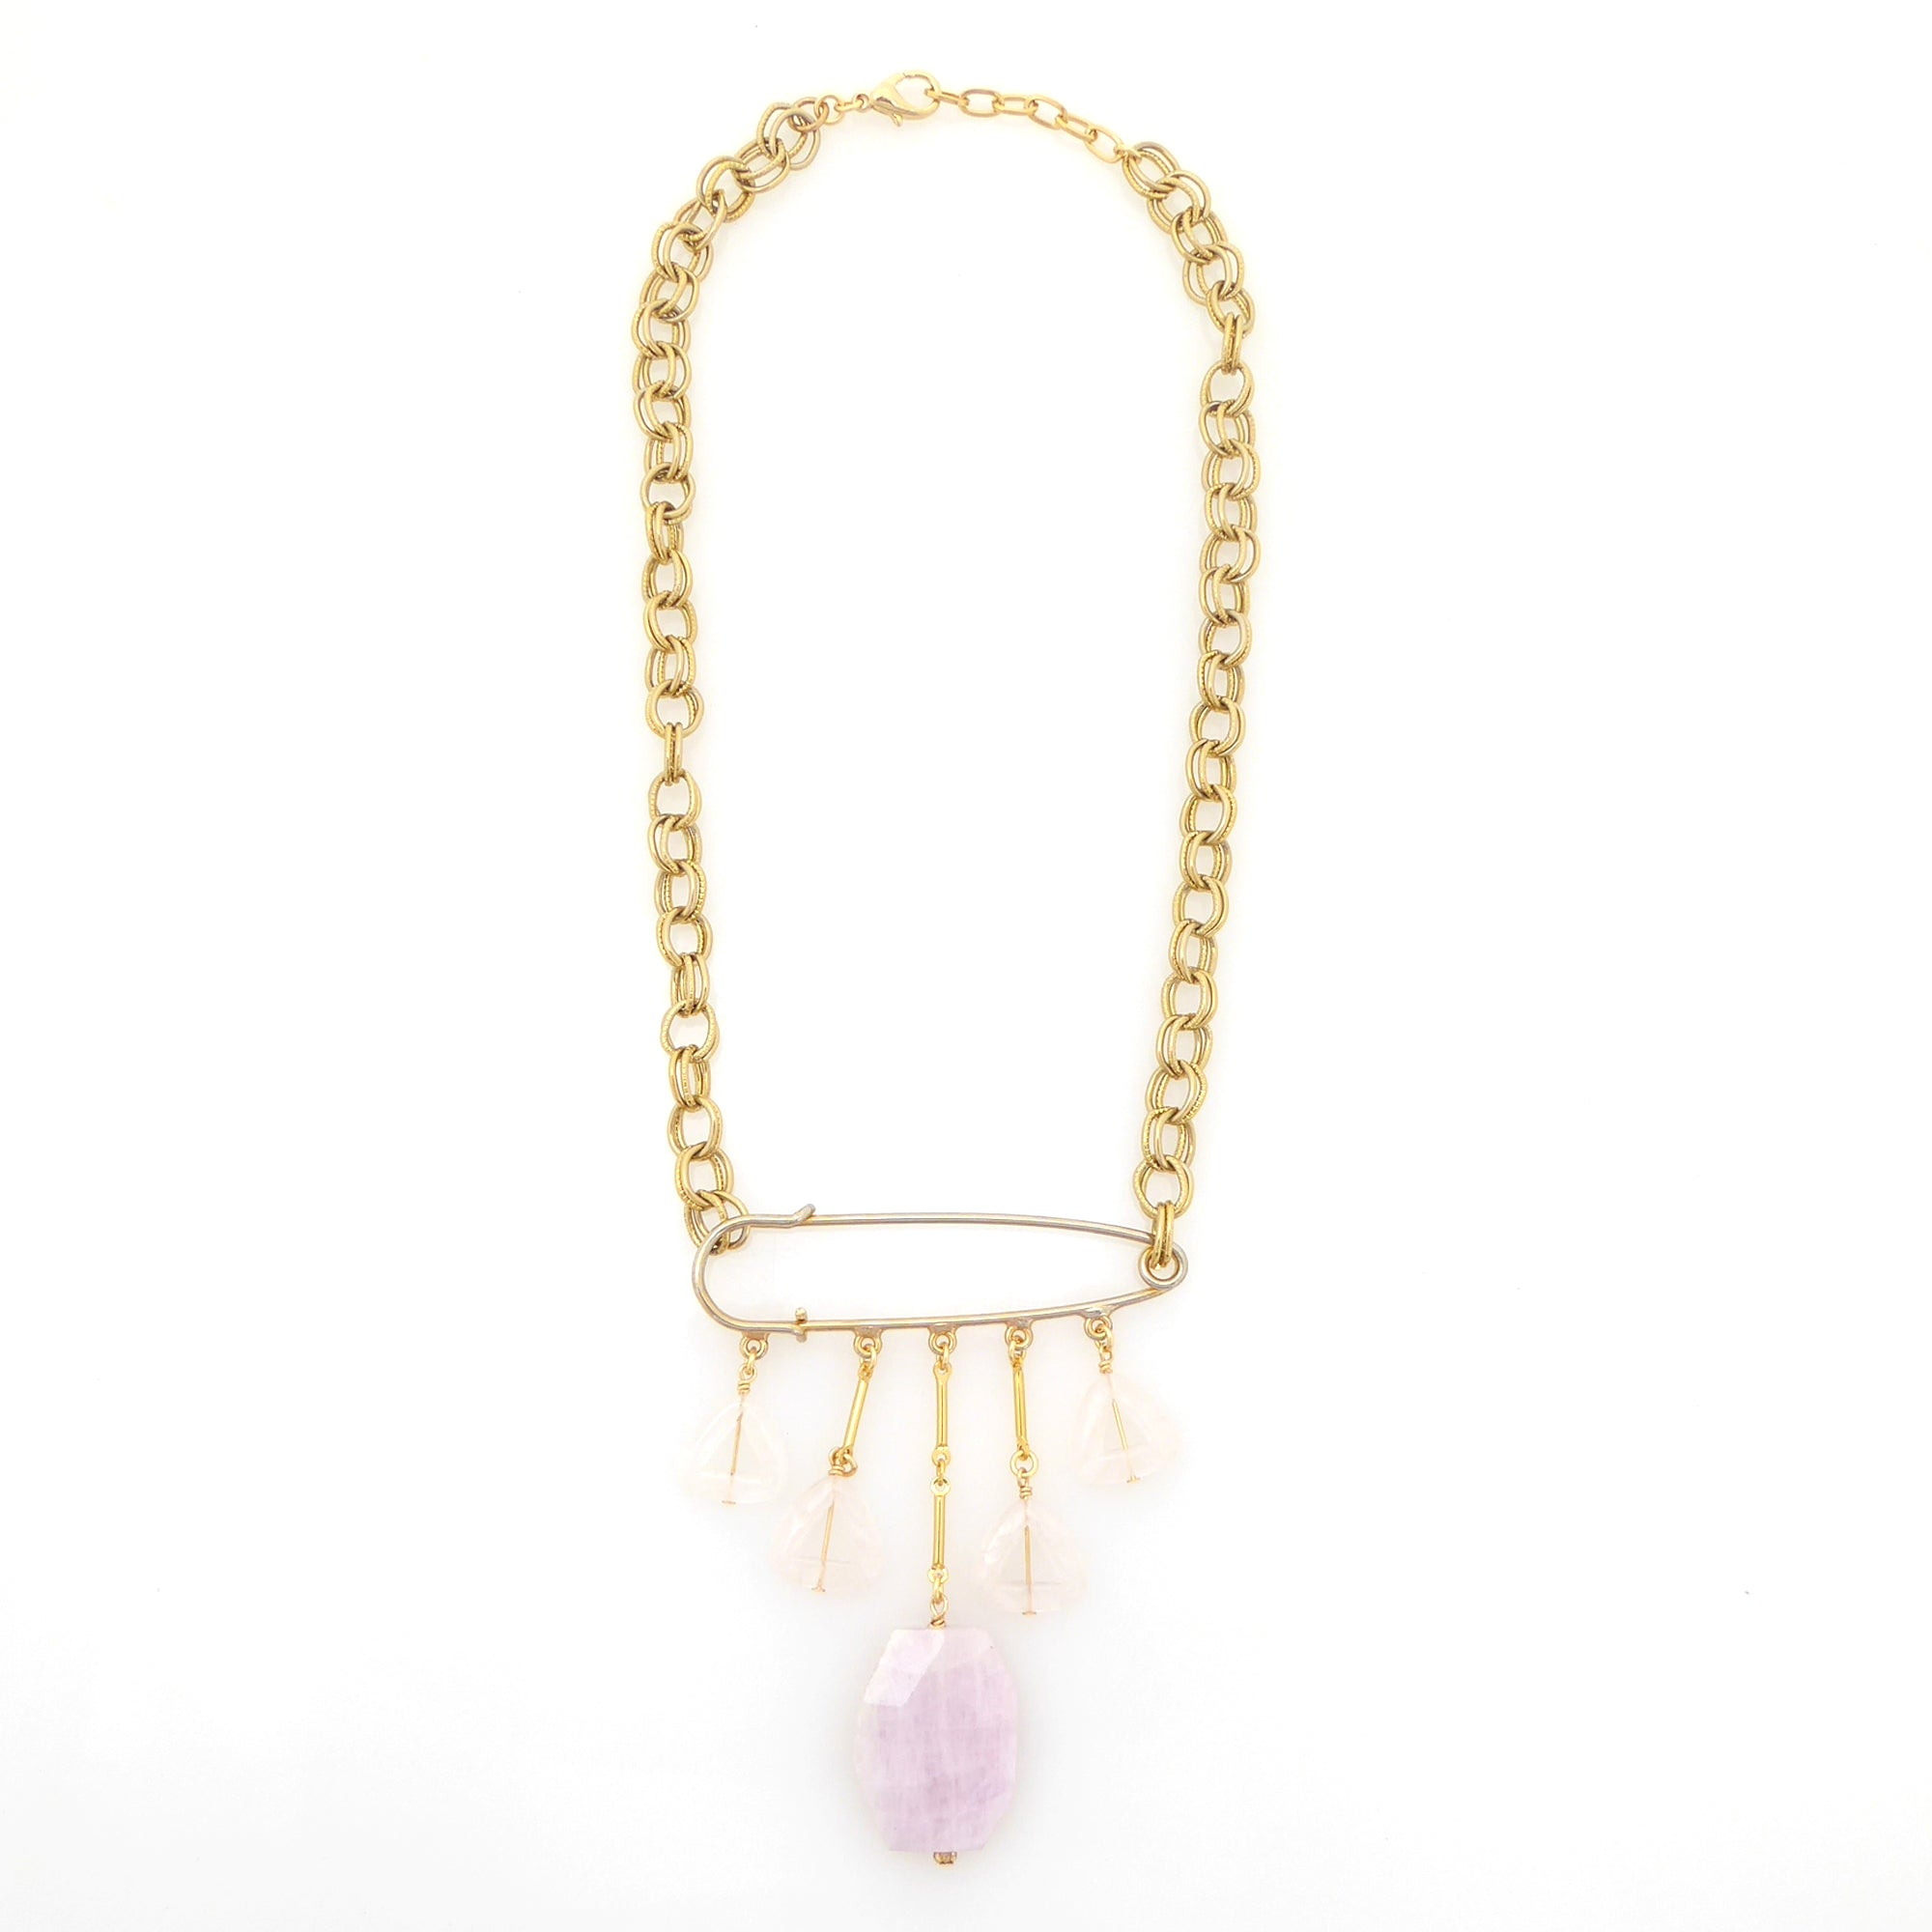 Kunzite safety pin necklace